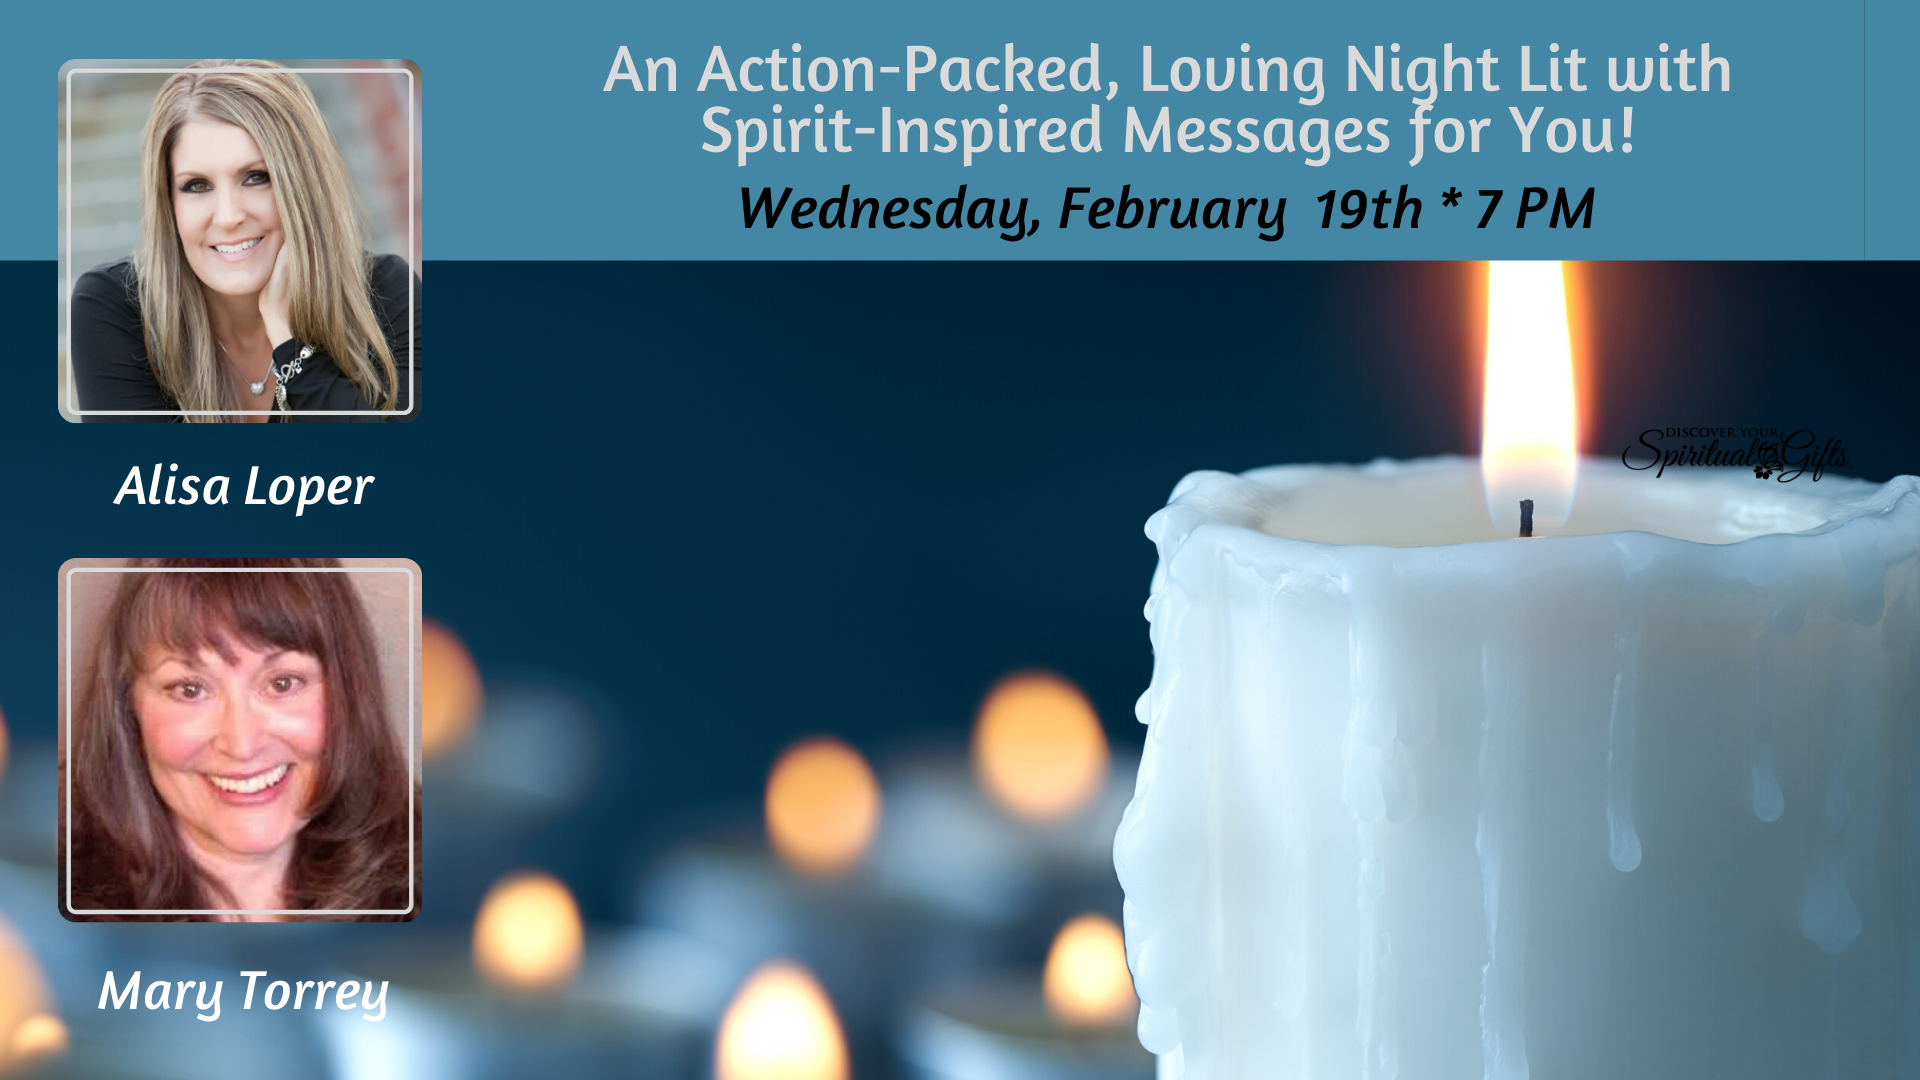 An Action-Packed, Loving Night Lit with Spirit-Inspired Messages for You!